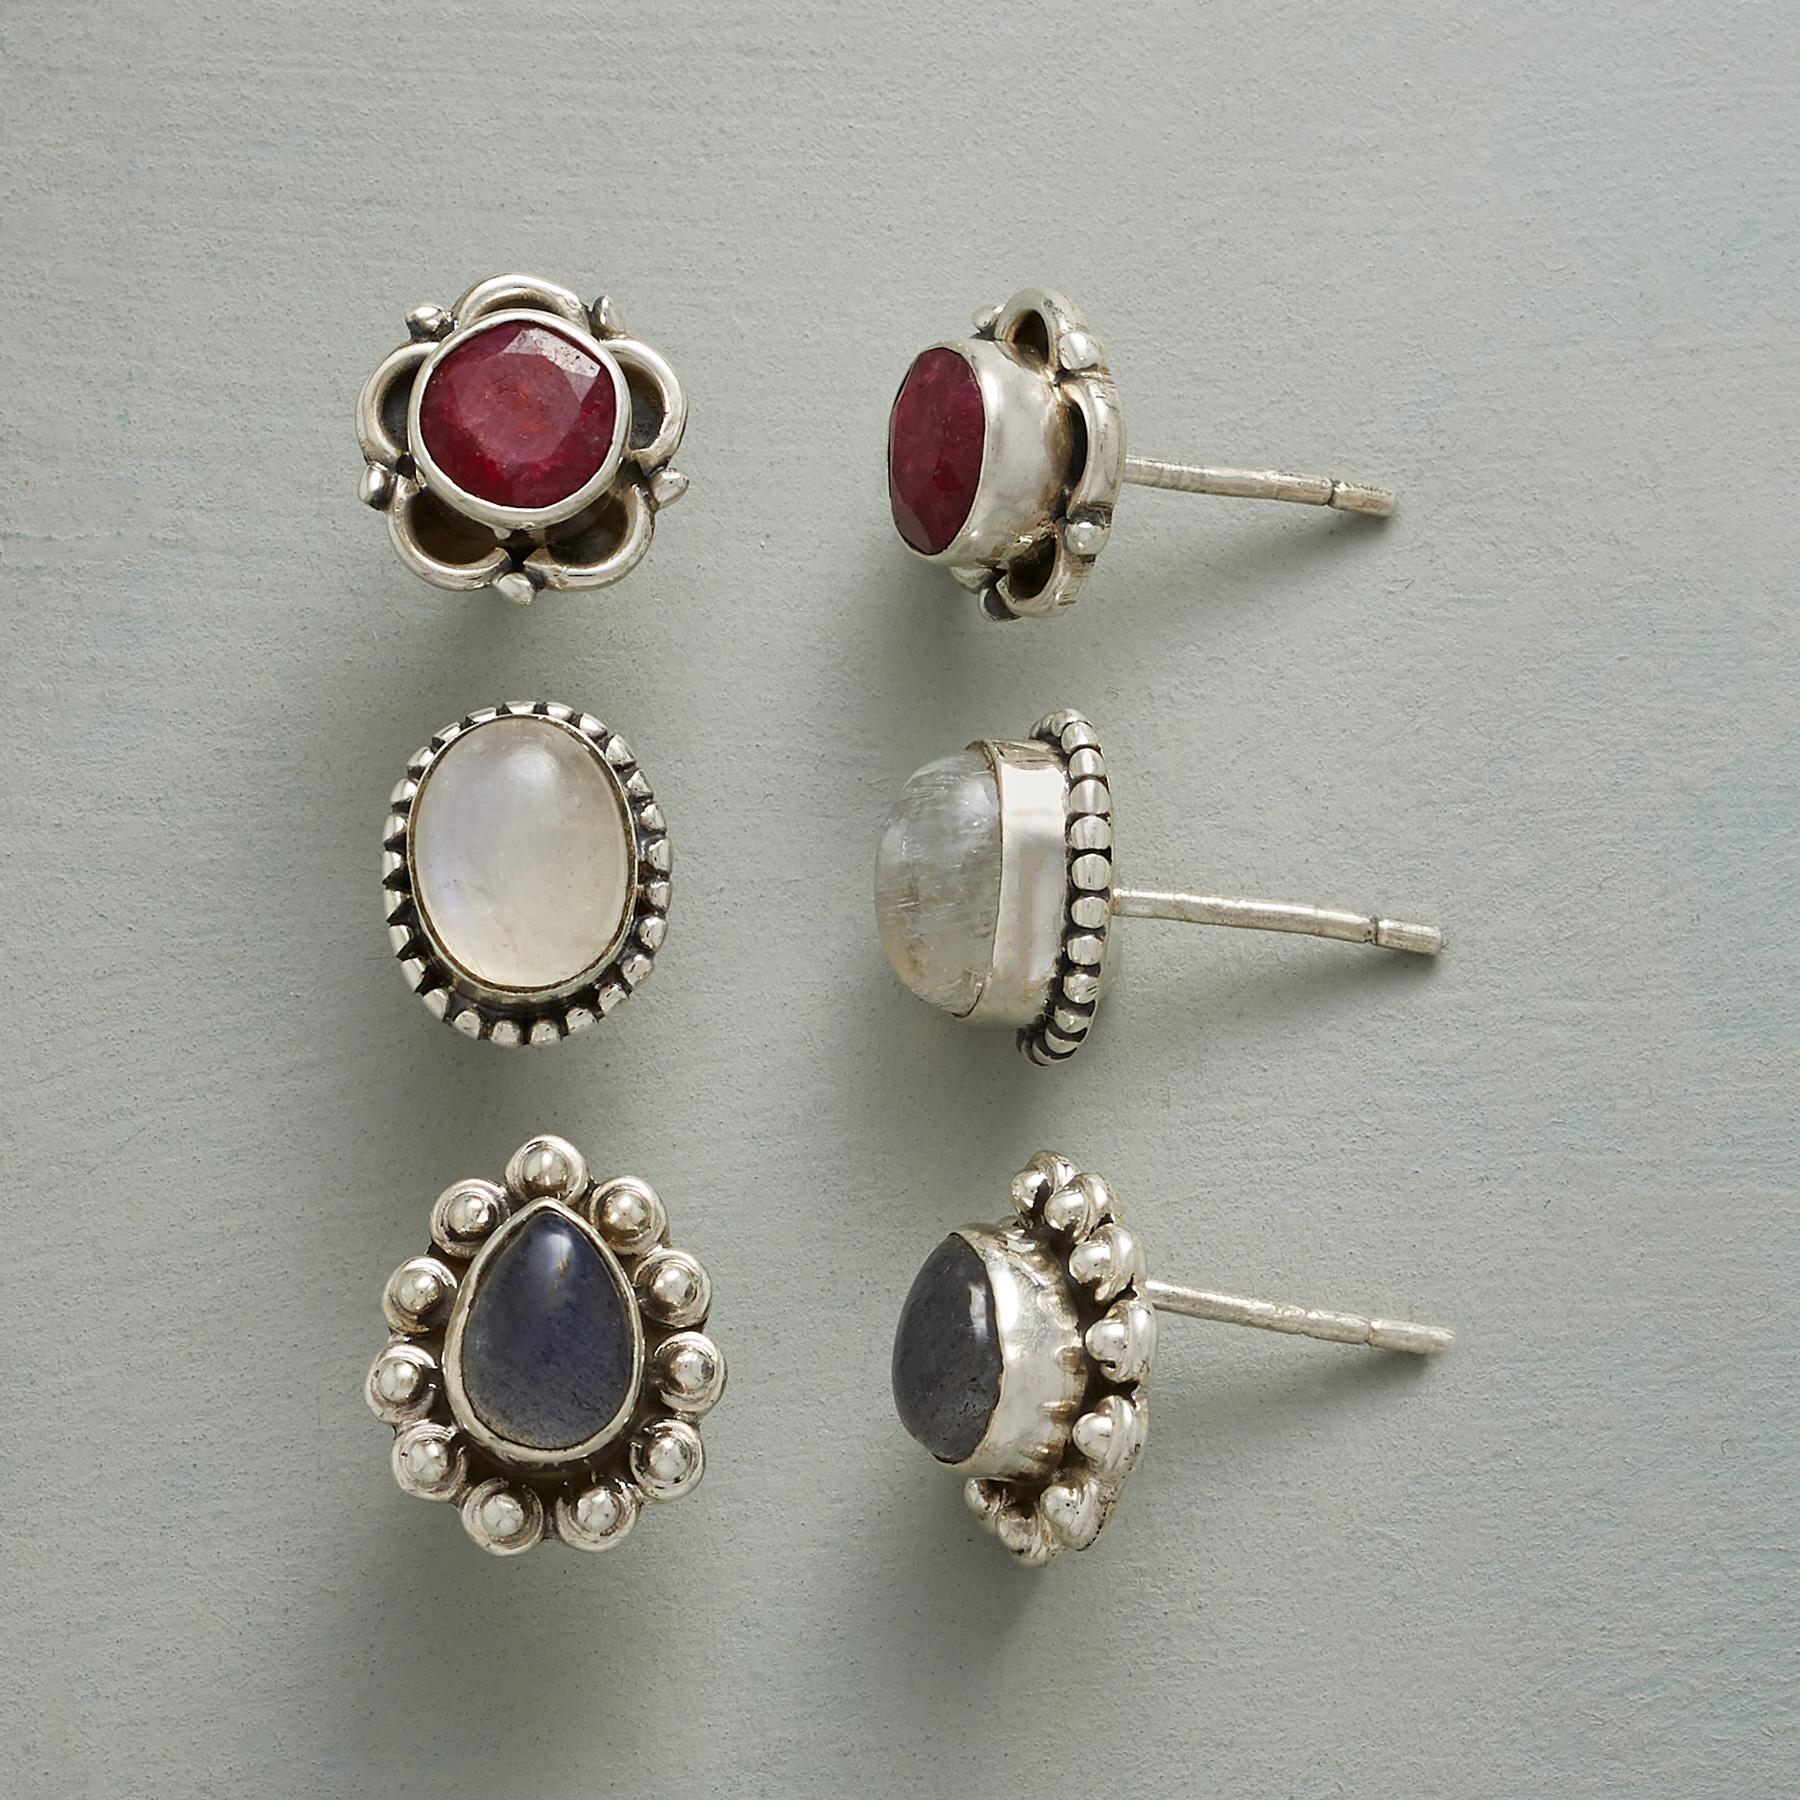 ESSENTIAL EARRING TRIO: View 1